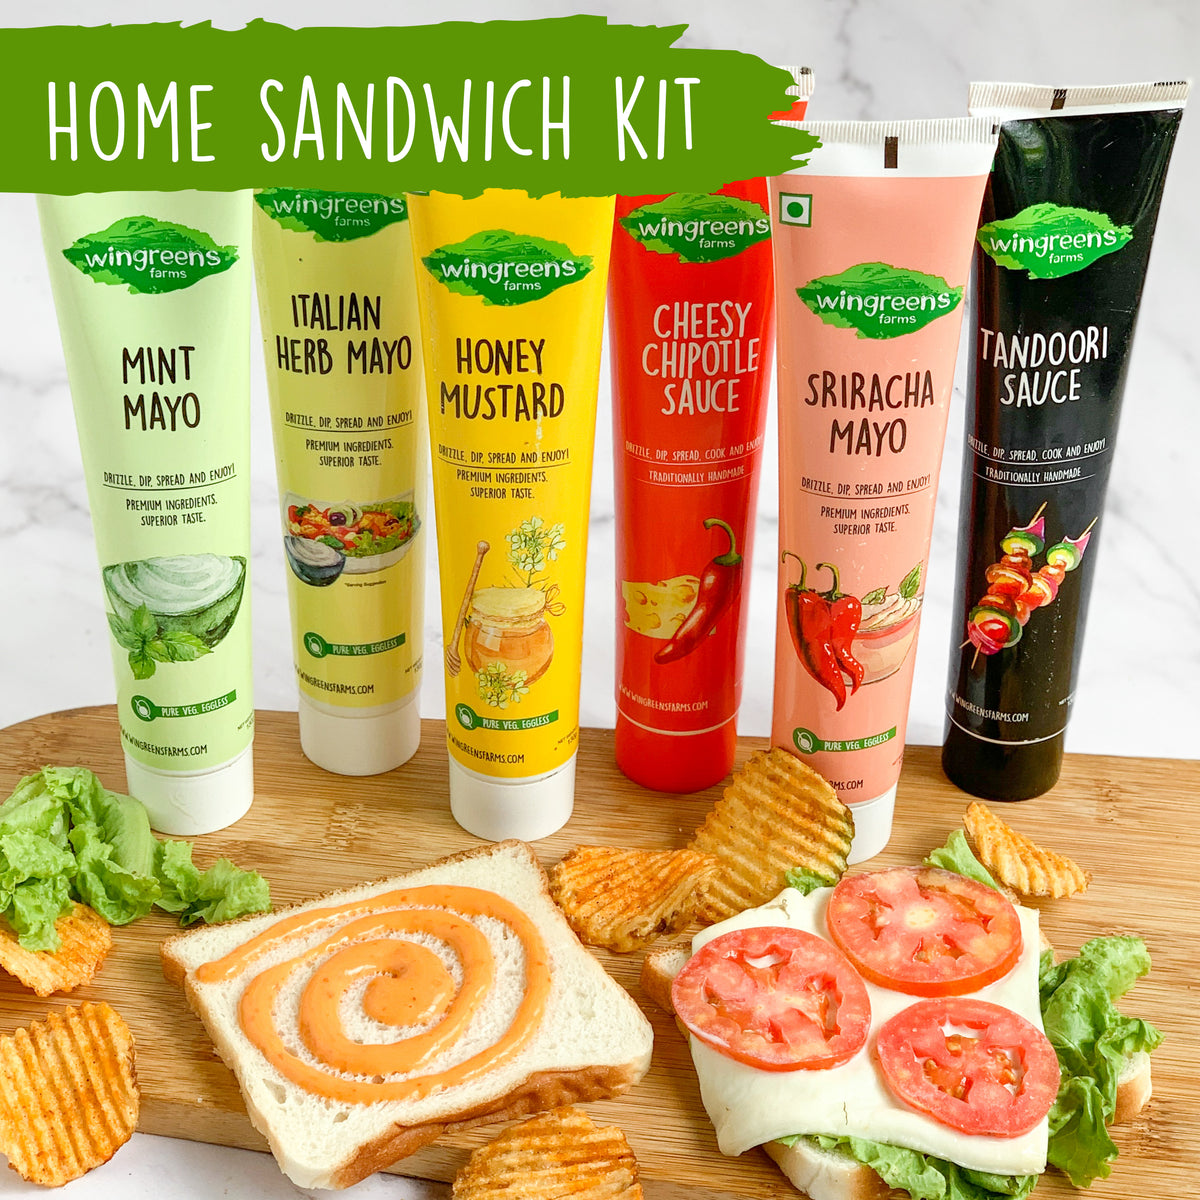 Home Sandwich Kit